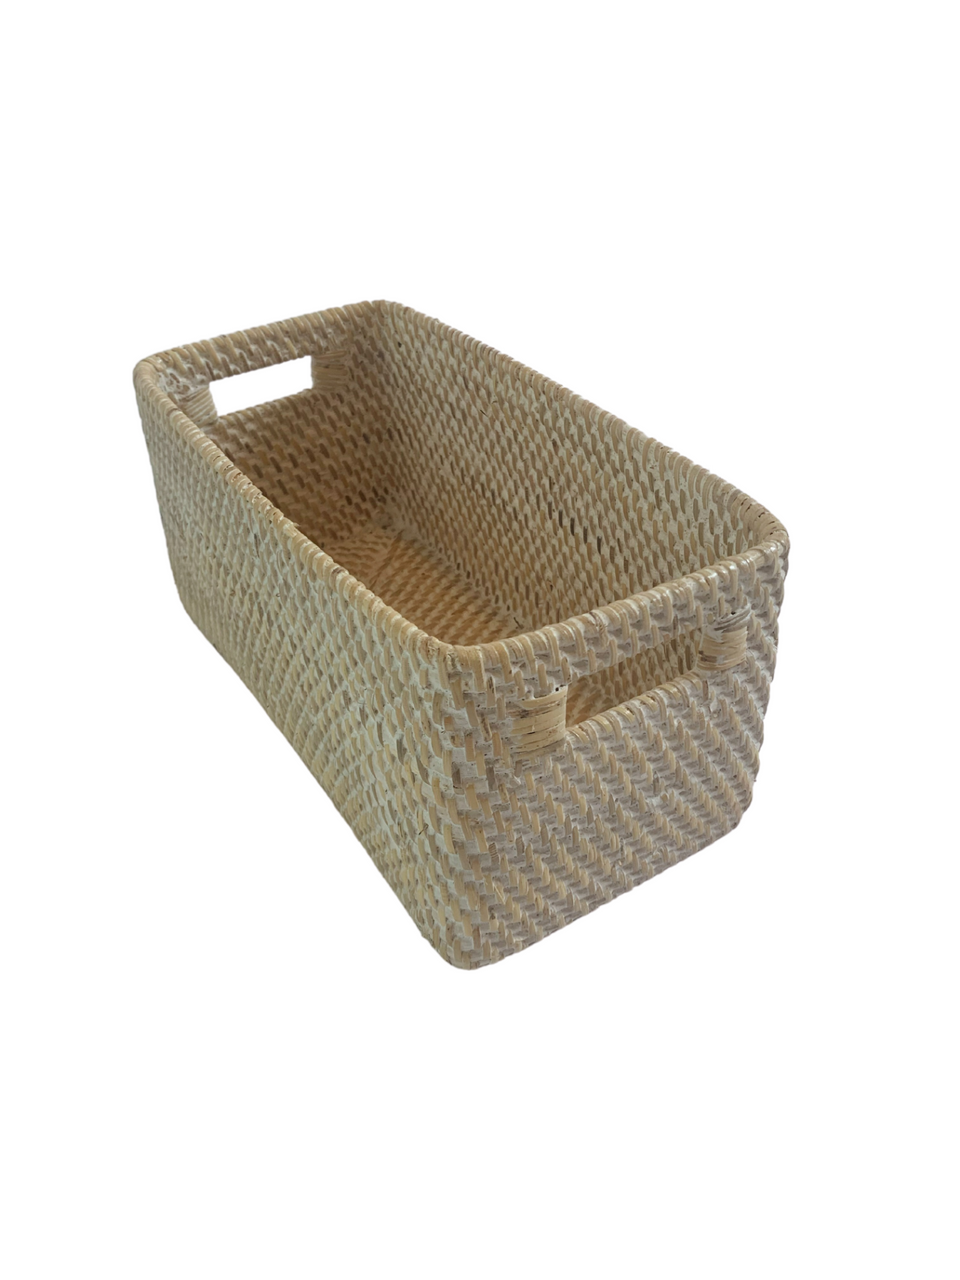 Storage Basket - Small - White Wash Rattan